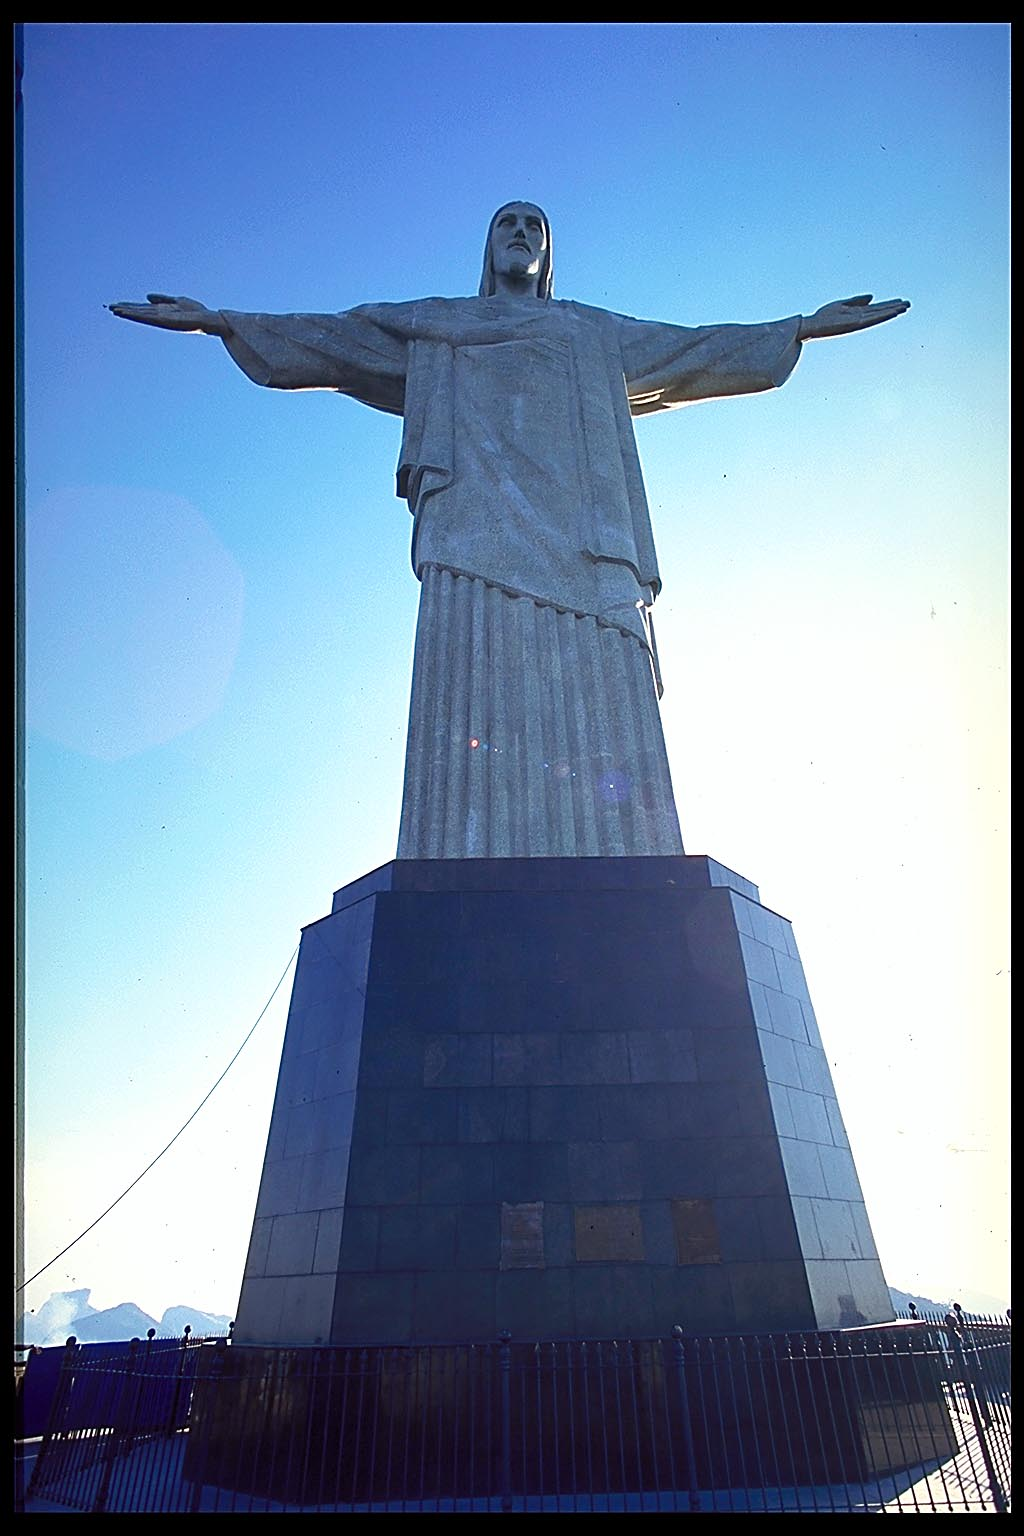 http://www.ianskipworth.com/photo/pcd1403/rio_christ_statue_12_4.jpg